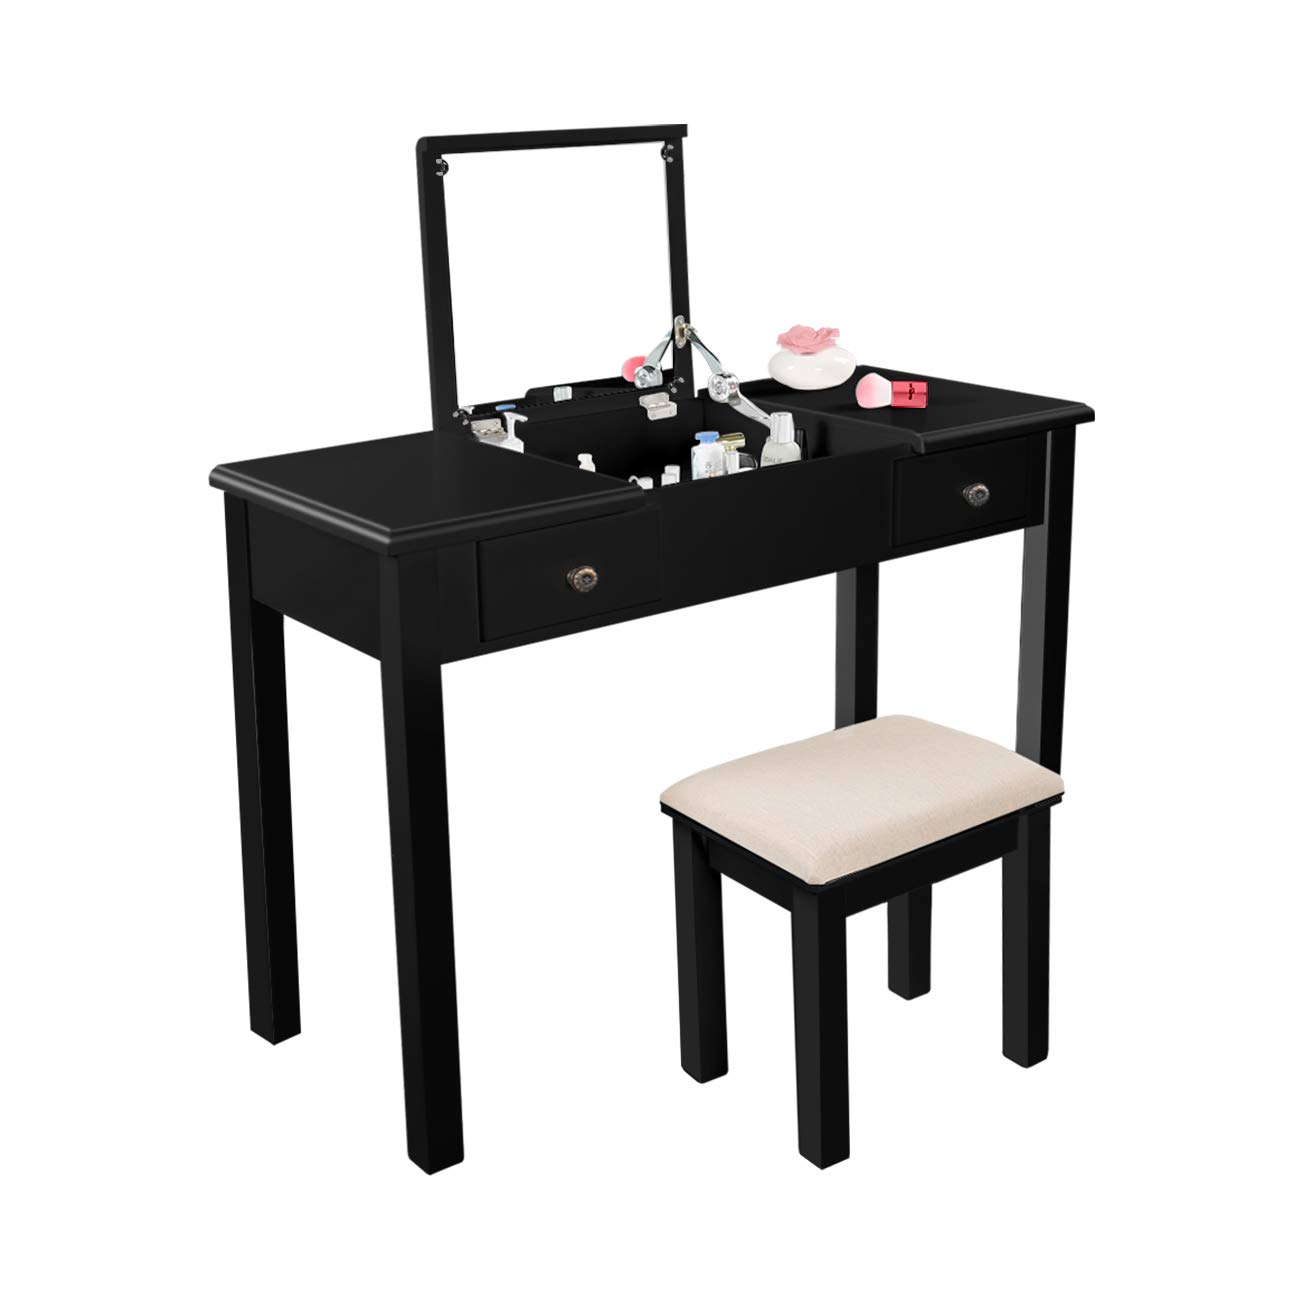 AODAILIHB Vanity Table with Flip Top Mirror Makeup Dressing Table Writing Desk with Cushioning Makeup Stool Set, 2 Drawers 3 Removable Organizers Easy Assembly (Black)